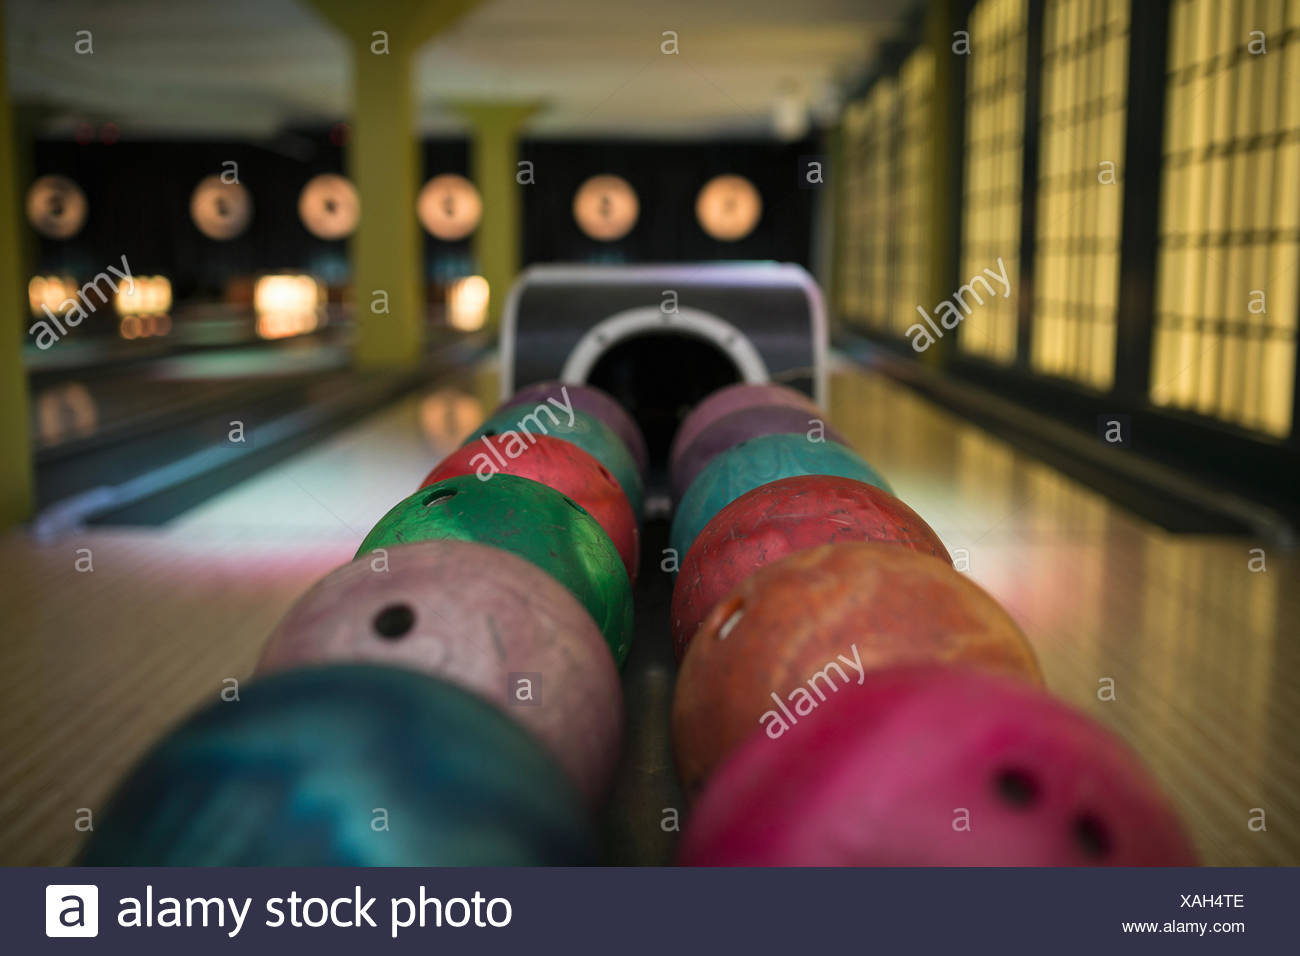 Multicolor bowling balls on rack at bowling alley - Stock Image